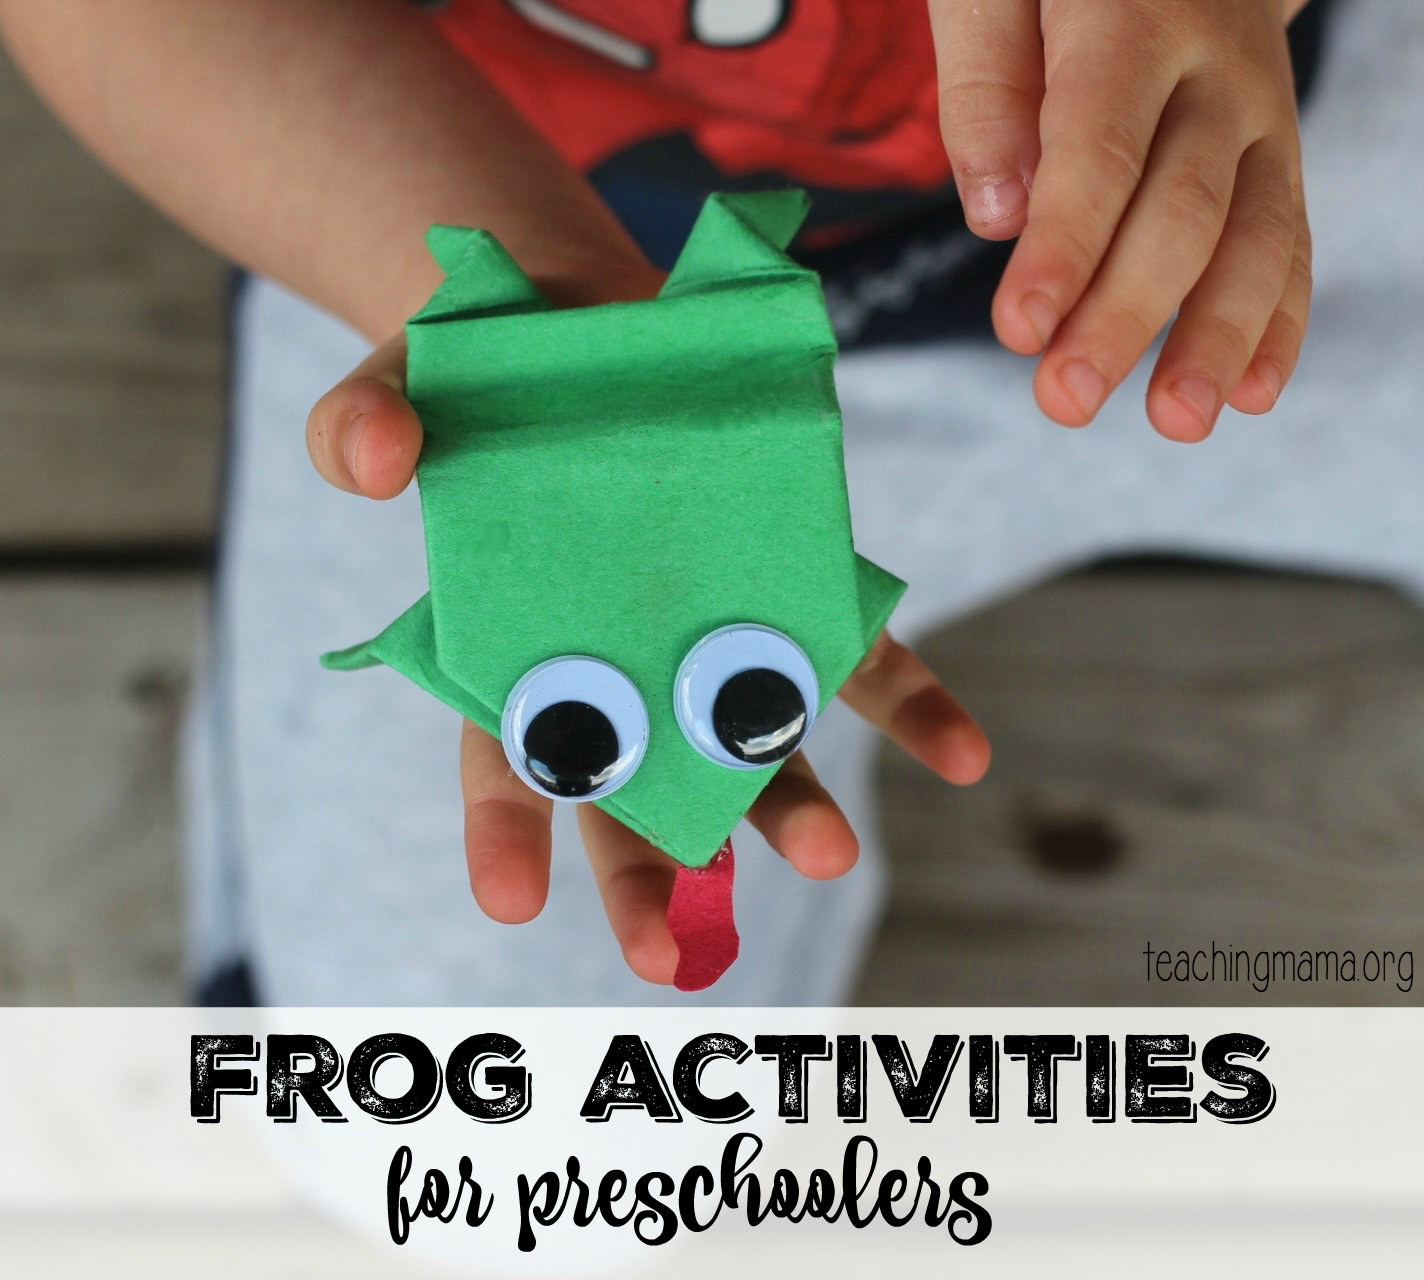 Frog activities for preschoolers for Frog crafts for preschoolers